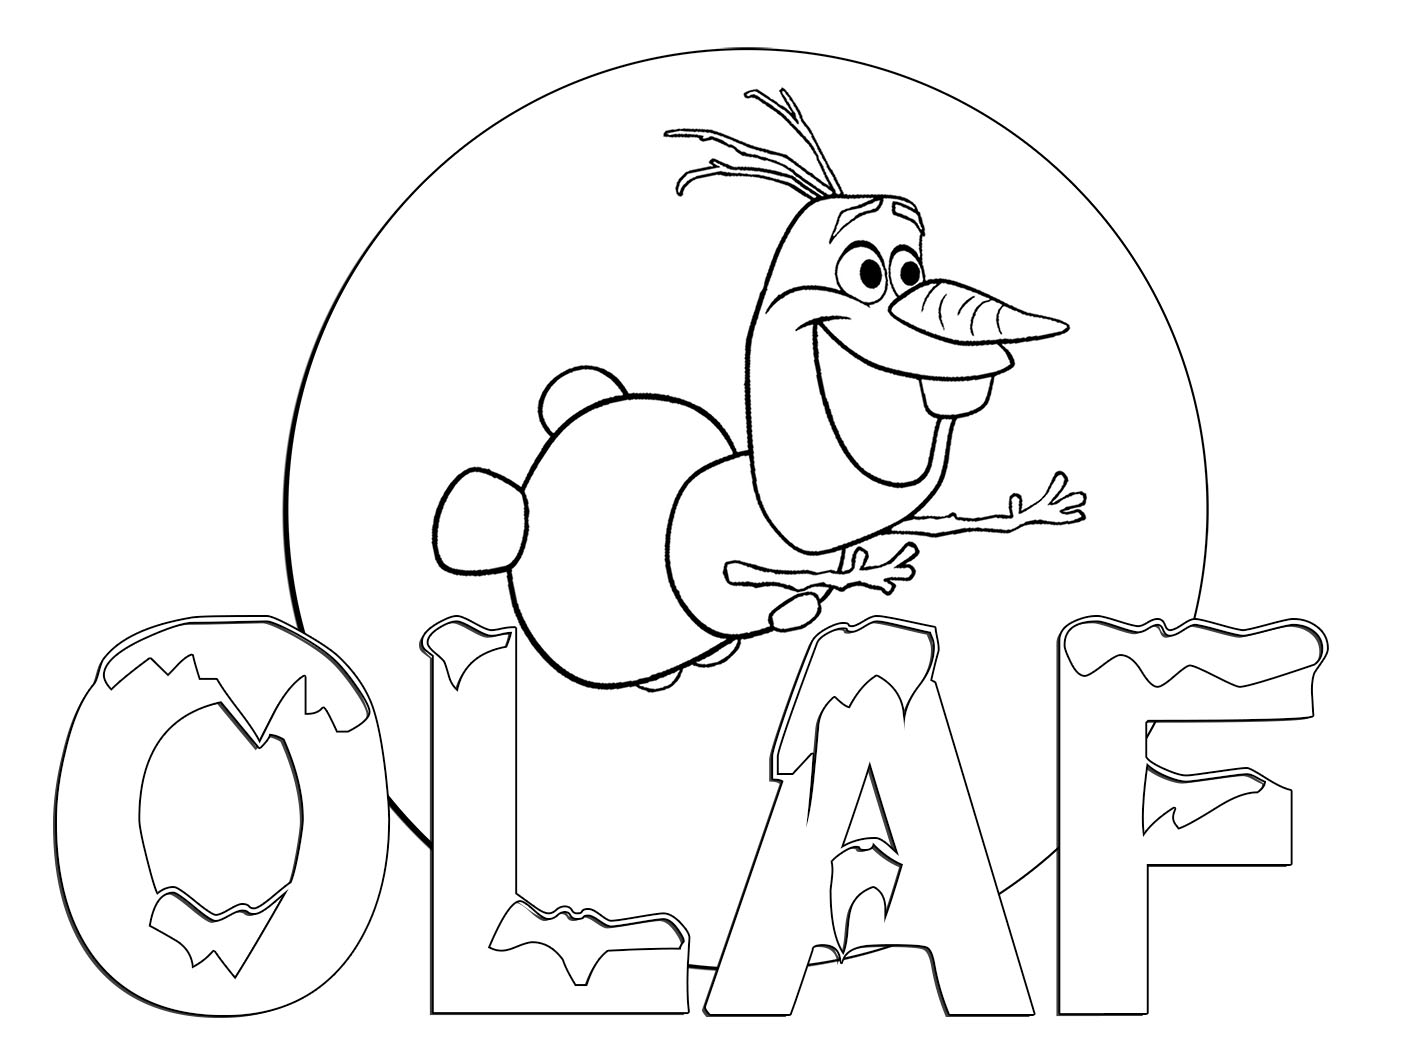 Coloring Pages Disney Jessie On Images Free Download At Channel: Disney Coloring Pages Frozen